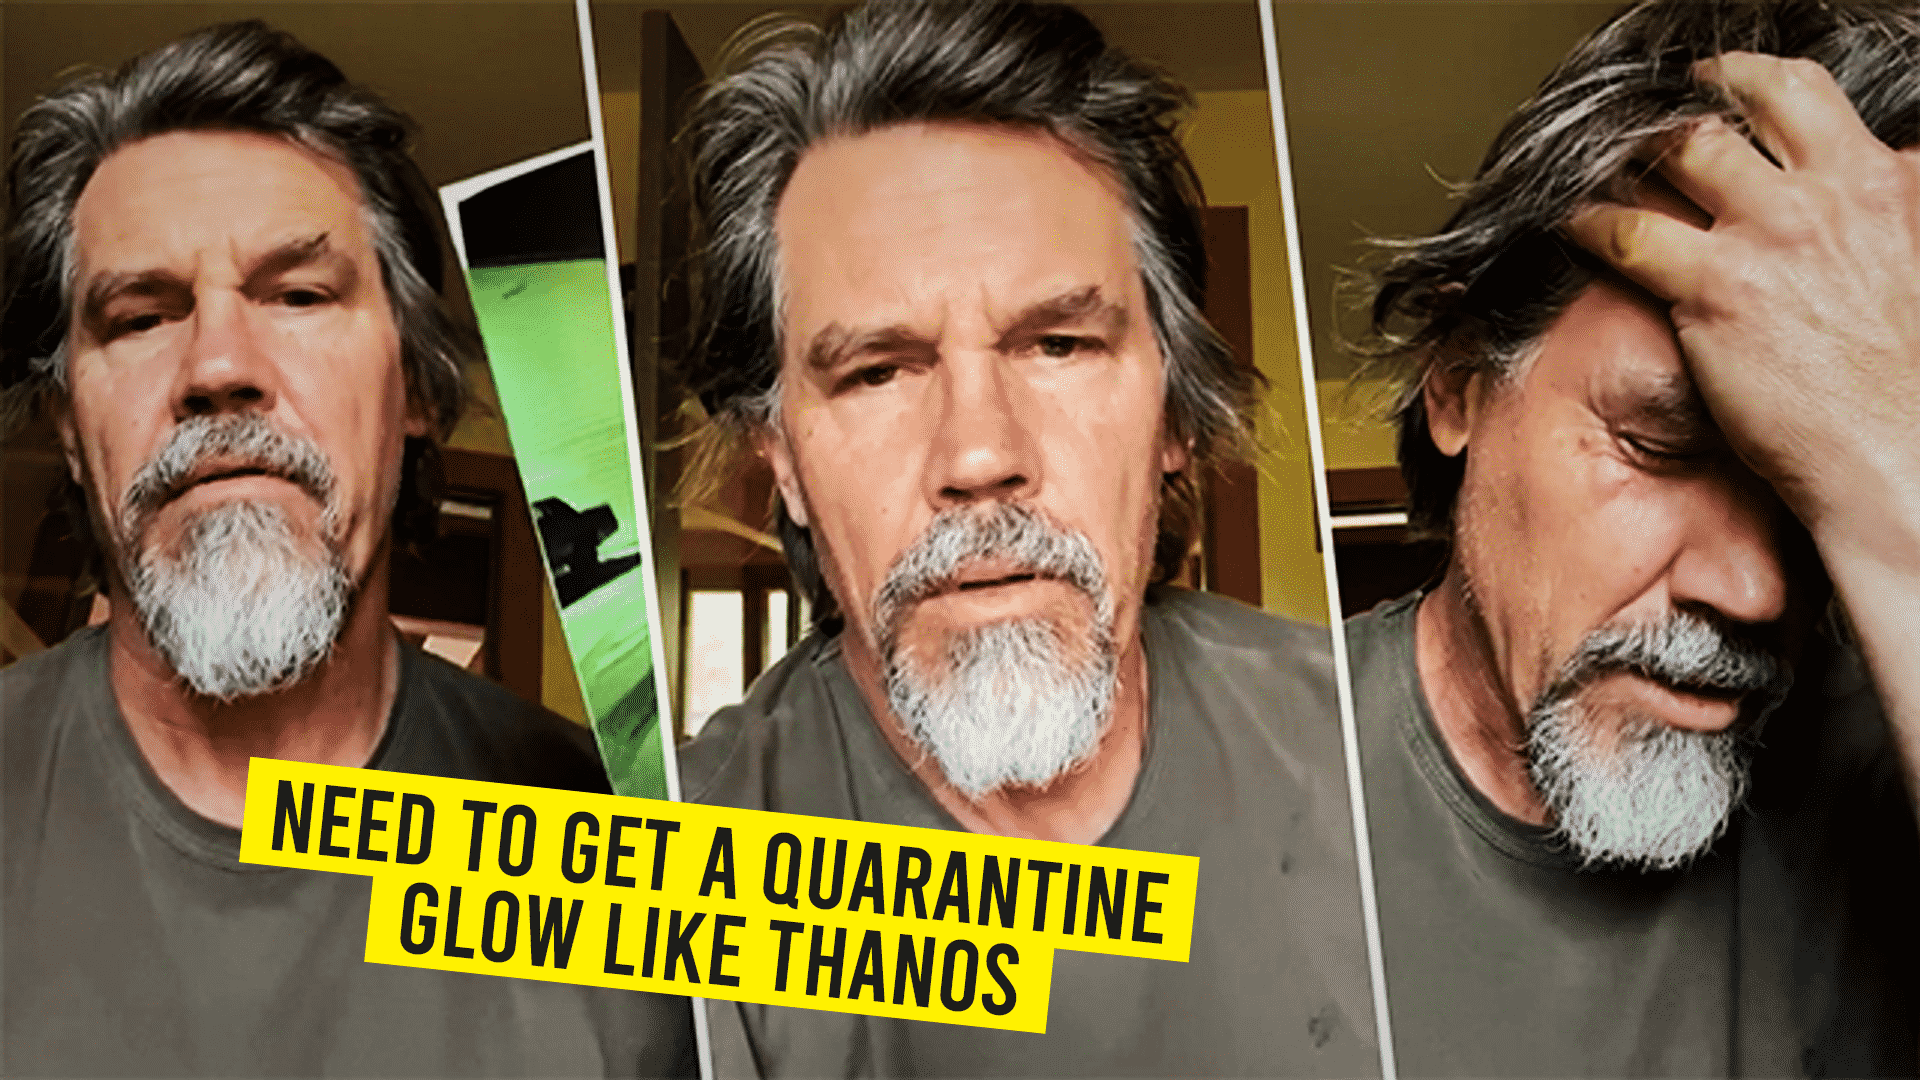 Need to get a quarantine glow like thanos